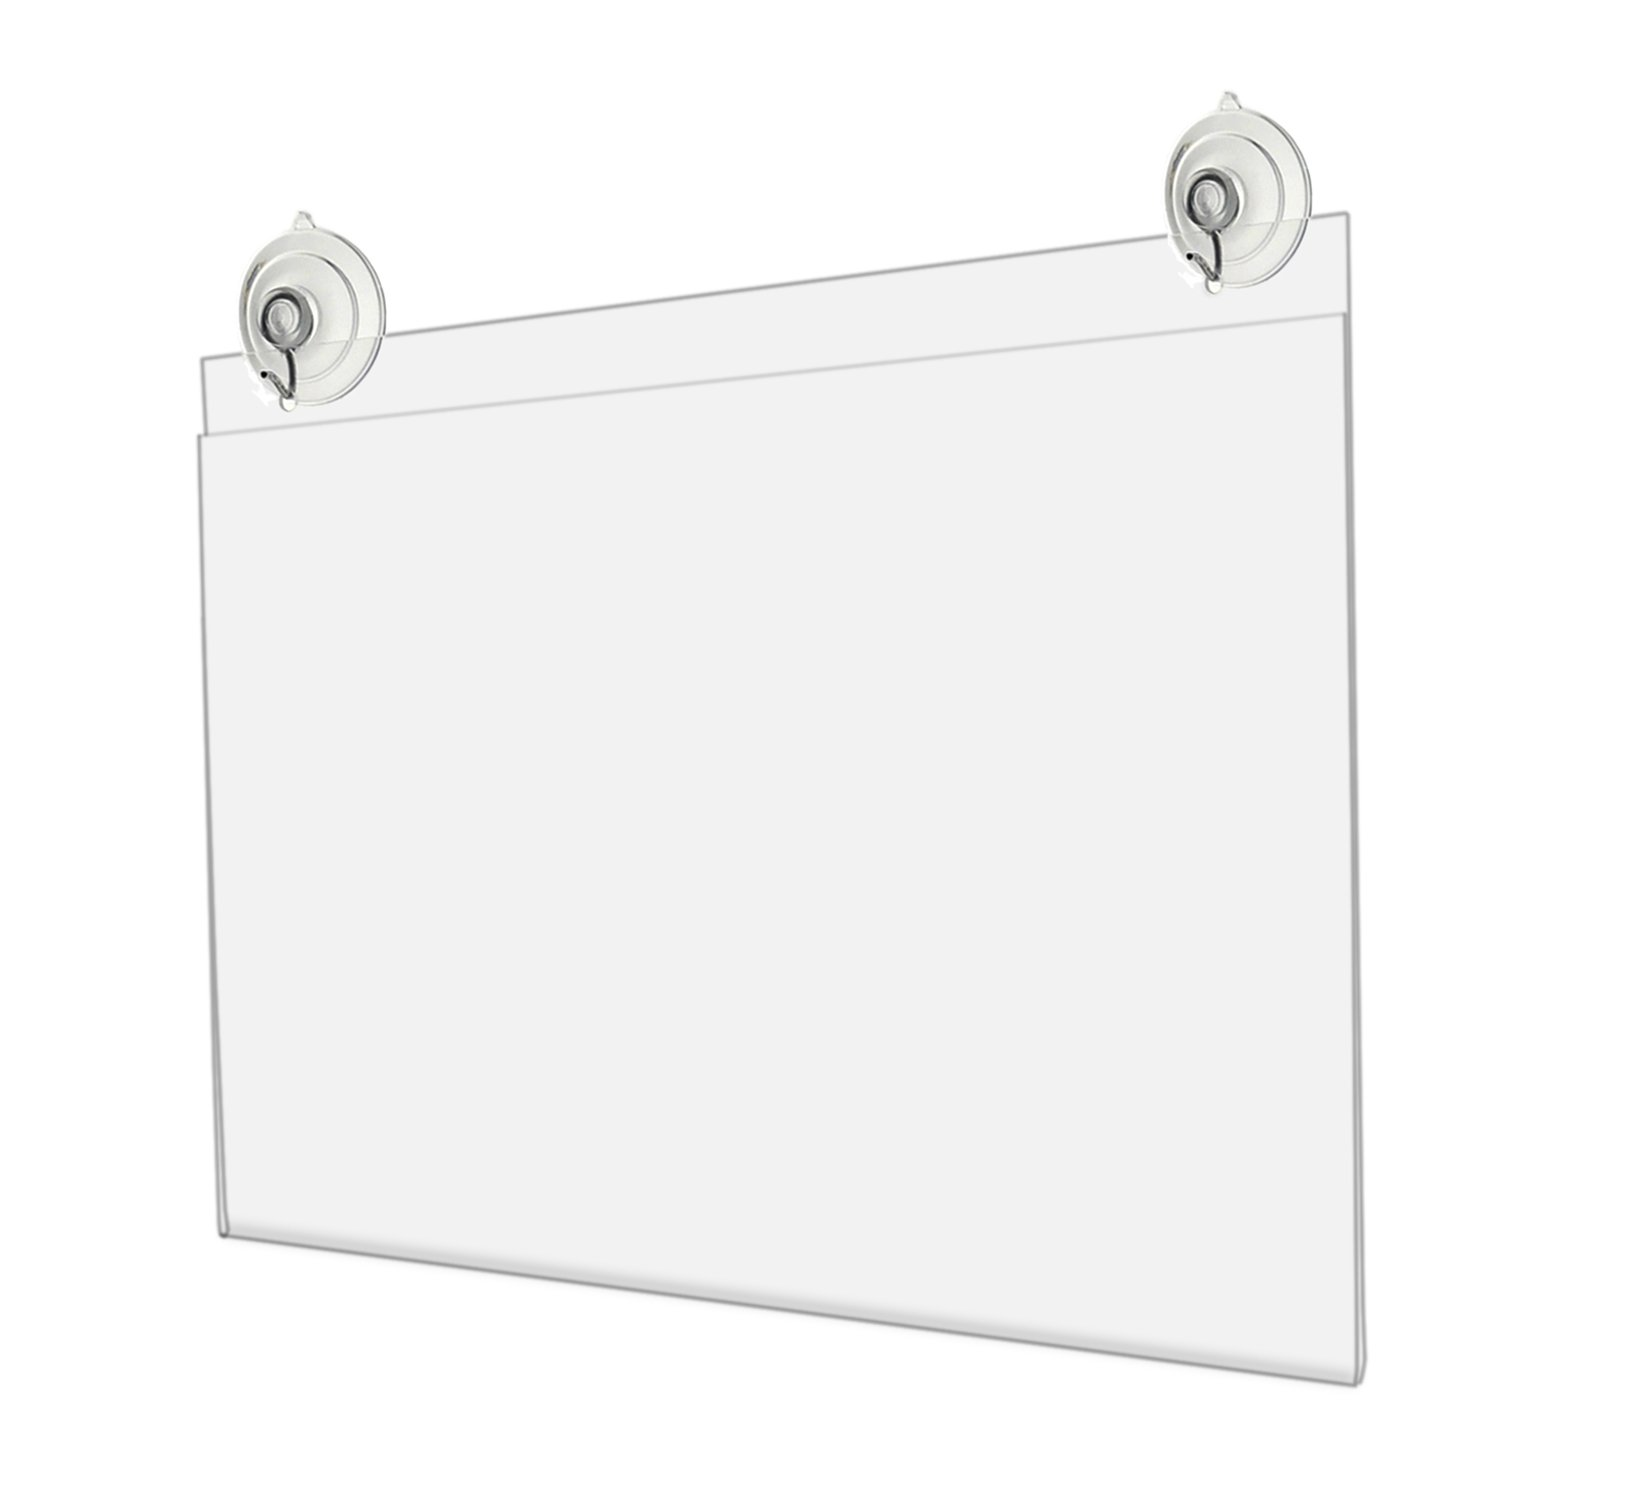 Marketing Holders Horizontal Store Front Sign Display Advertisement Flyer Frame with Suction Cups and Hanging Hooks 17''w x 11''h Lot of 2 by Marketing Holders